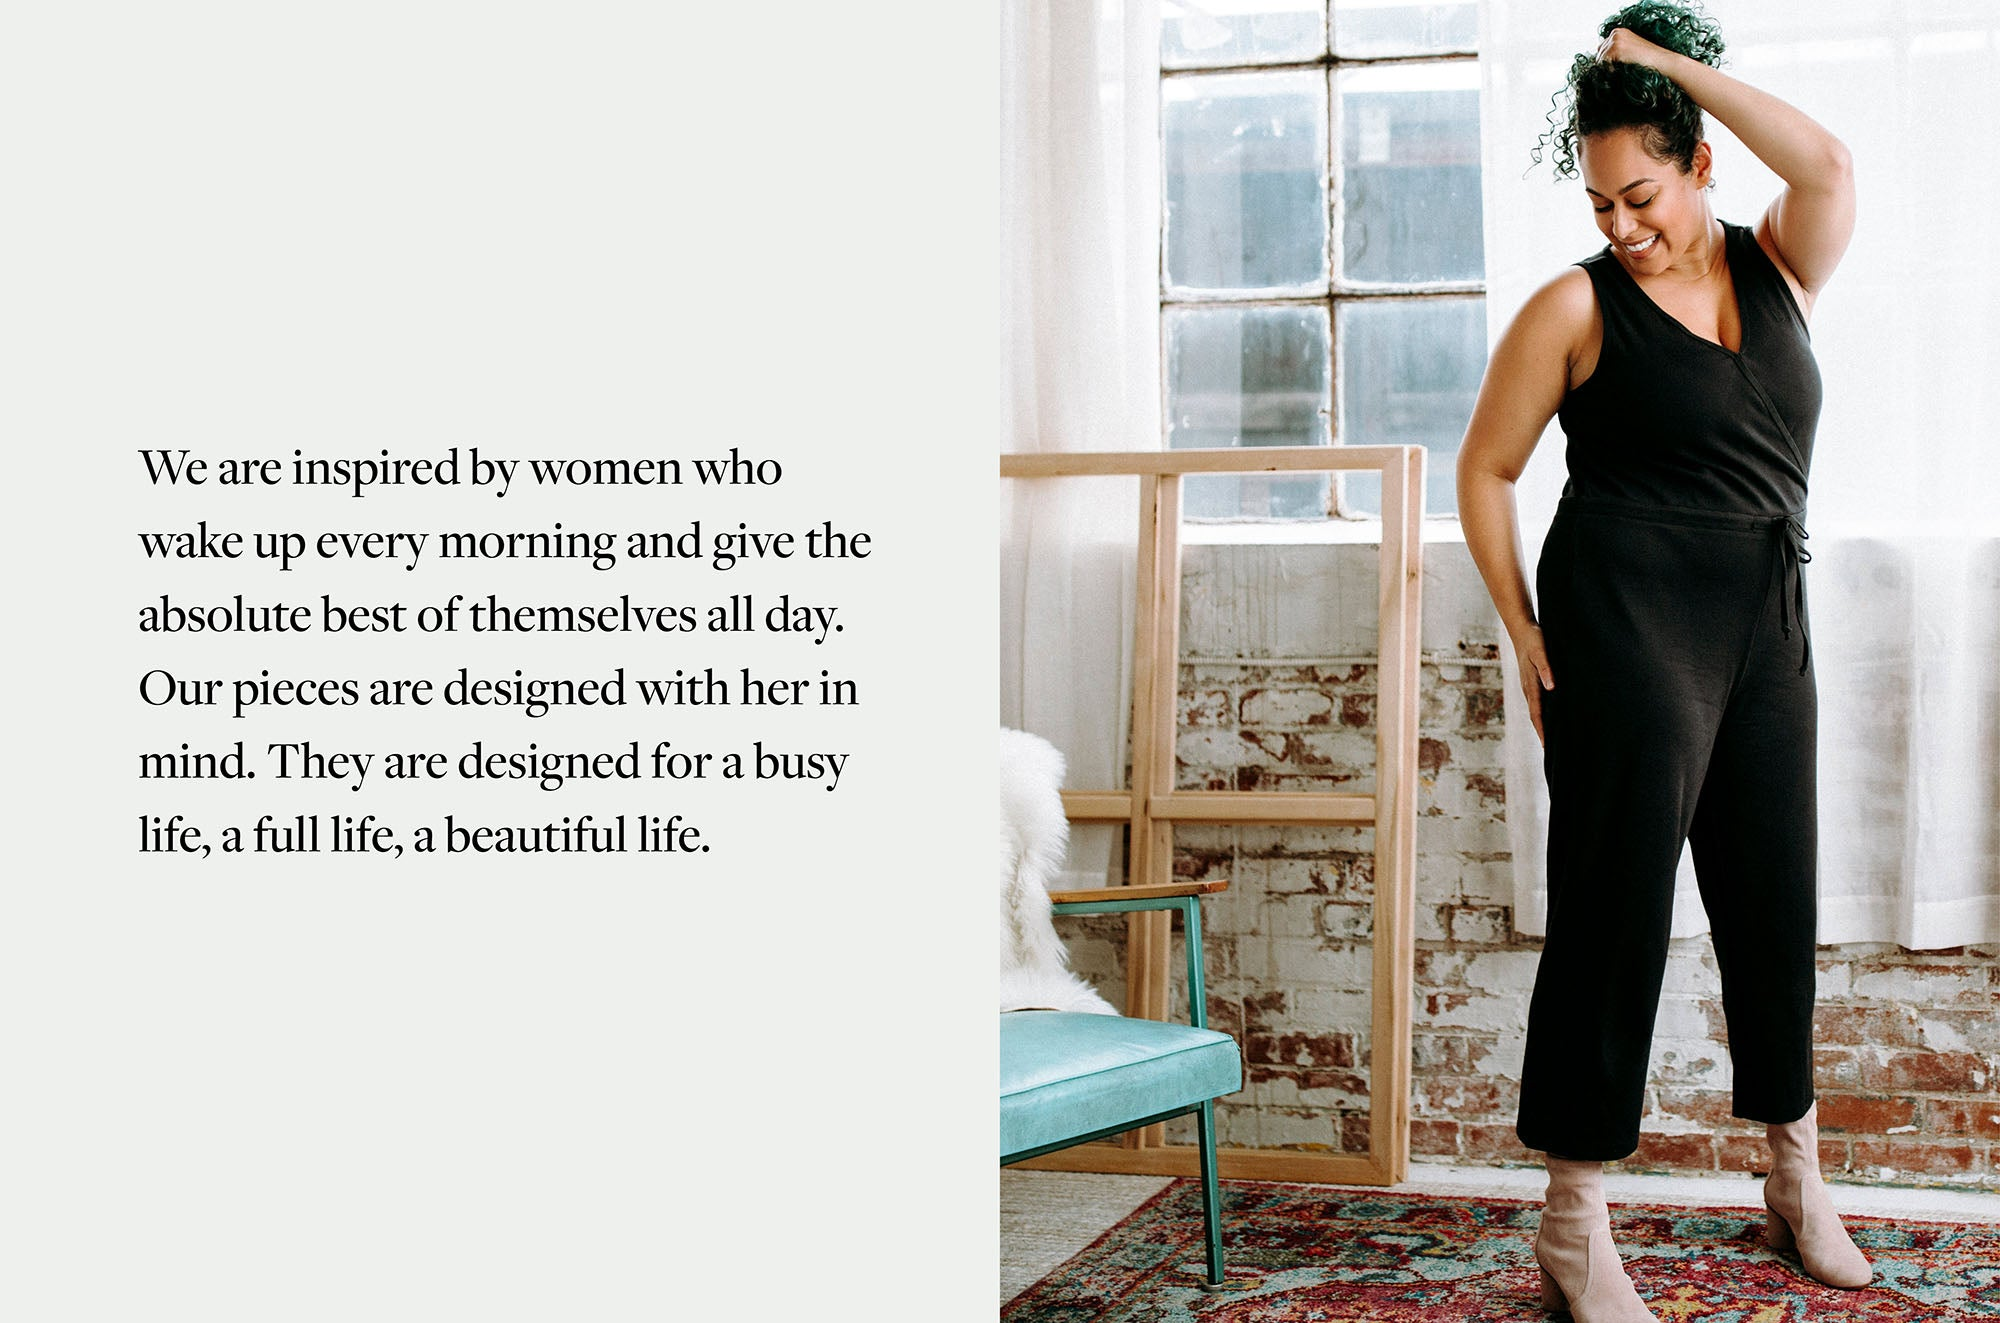 We are inspired by women who wake up every morning and give the absolute best of themselves all day.